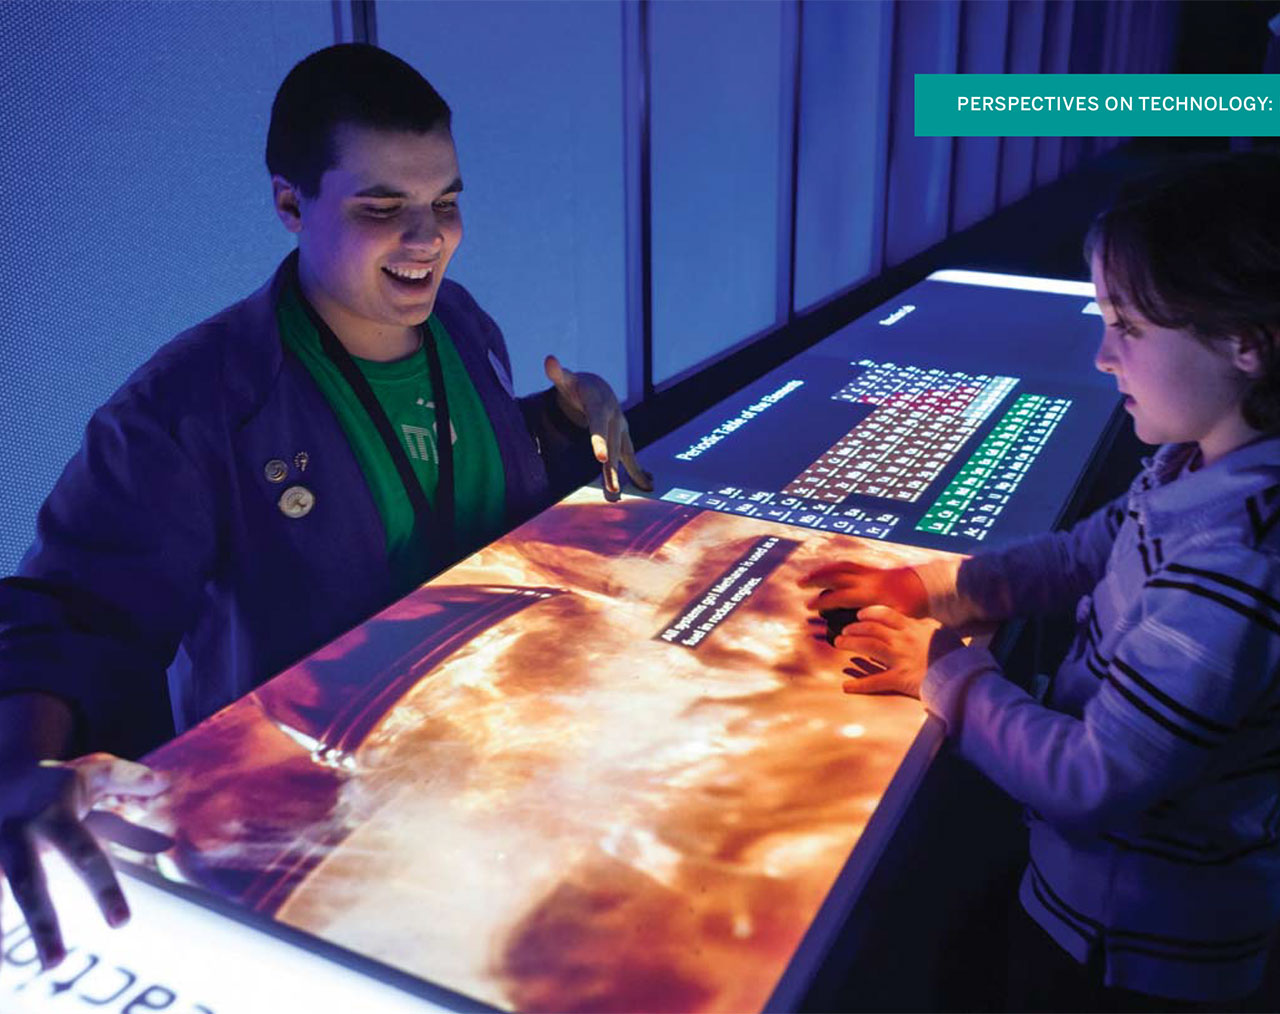 Image for the post: 'Human Computer Interaction & the Next Generation of Exhibits'